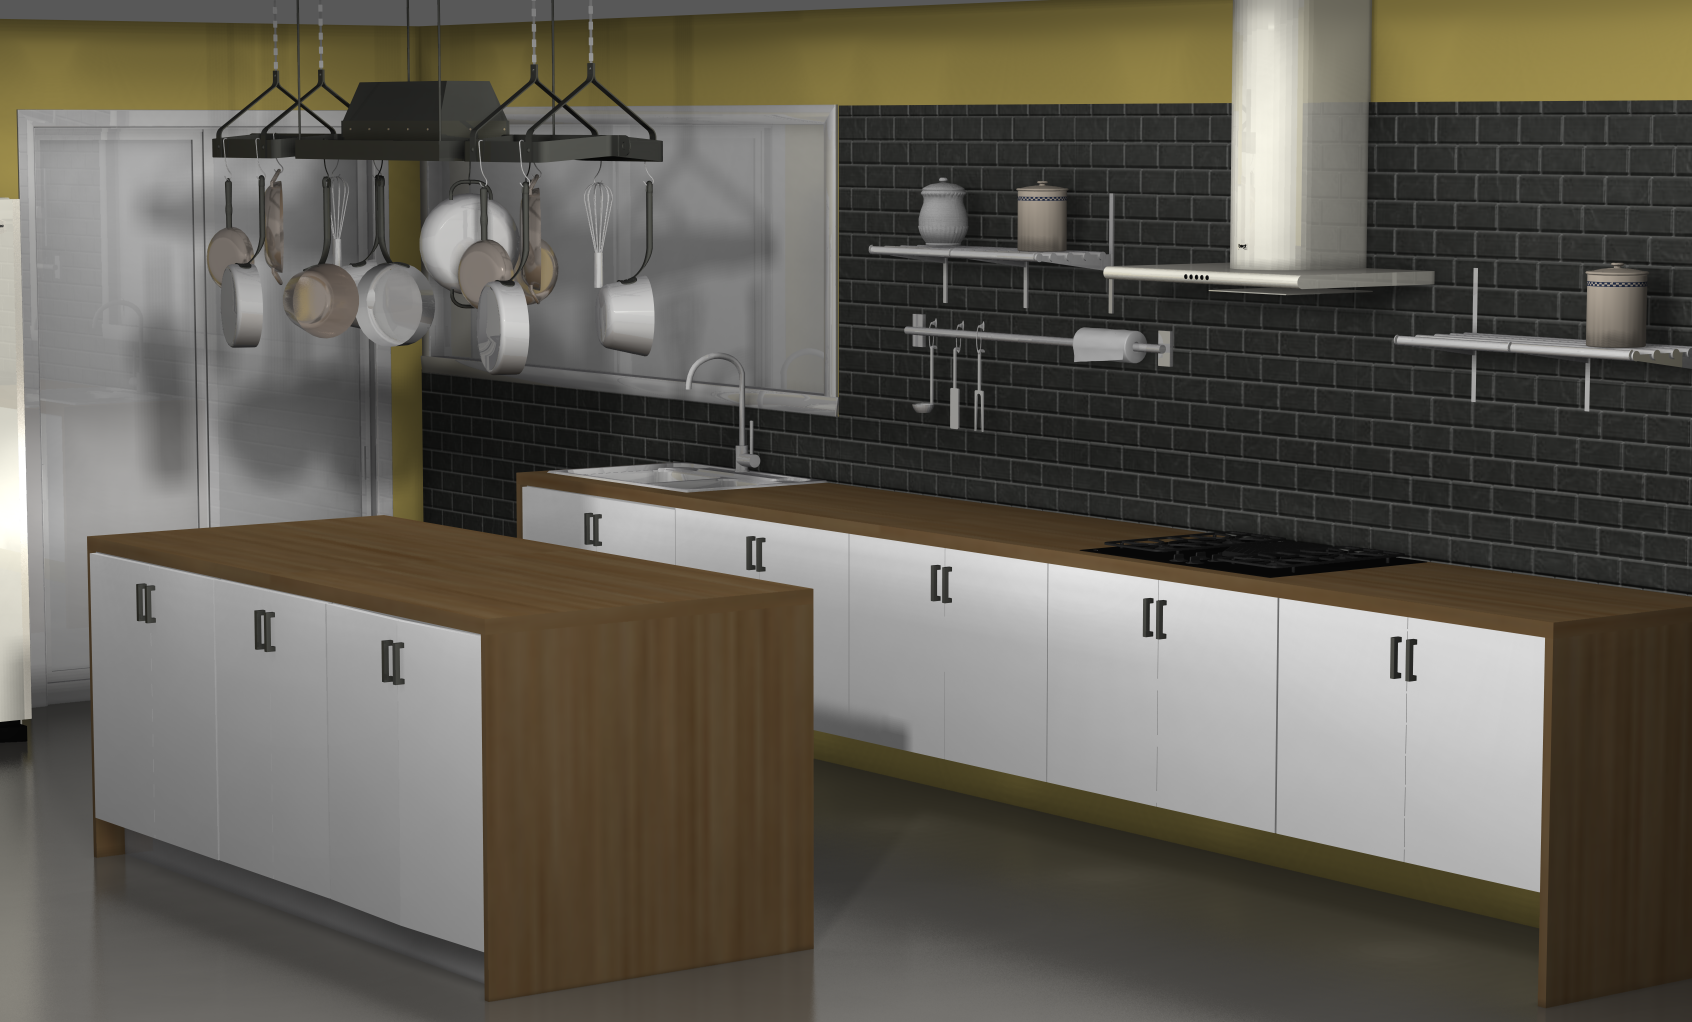 Kitchen design ideas an ikea kitchen with fewer wall cabinets for Ikea fliesenspiegel